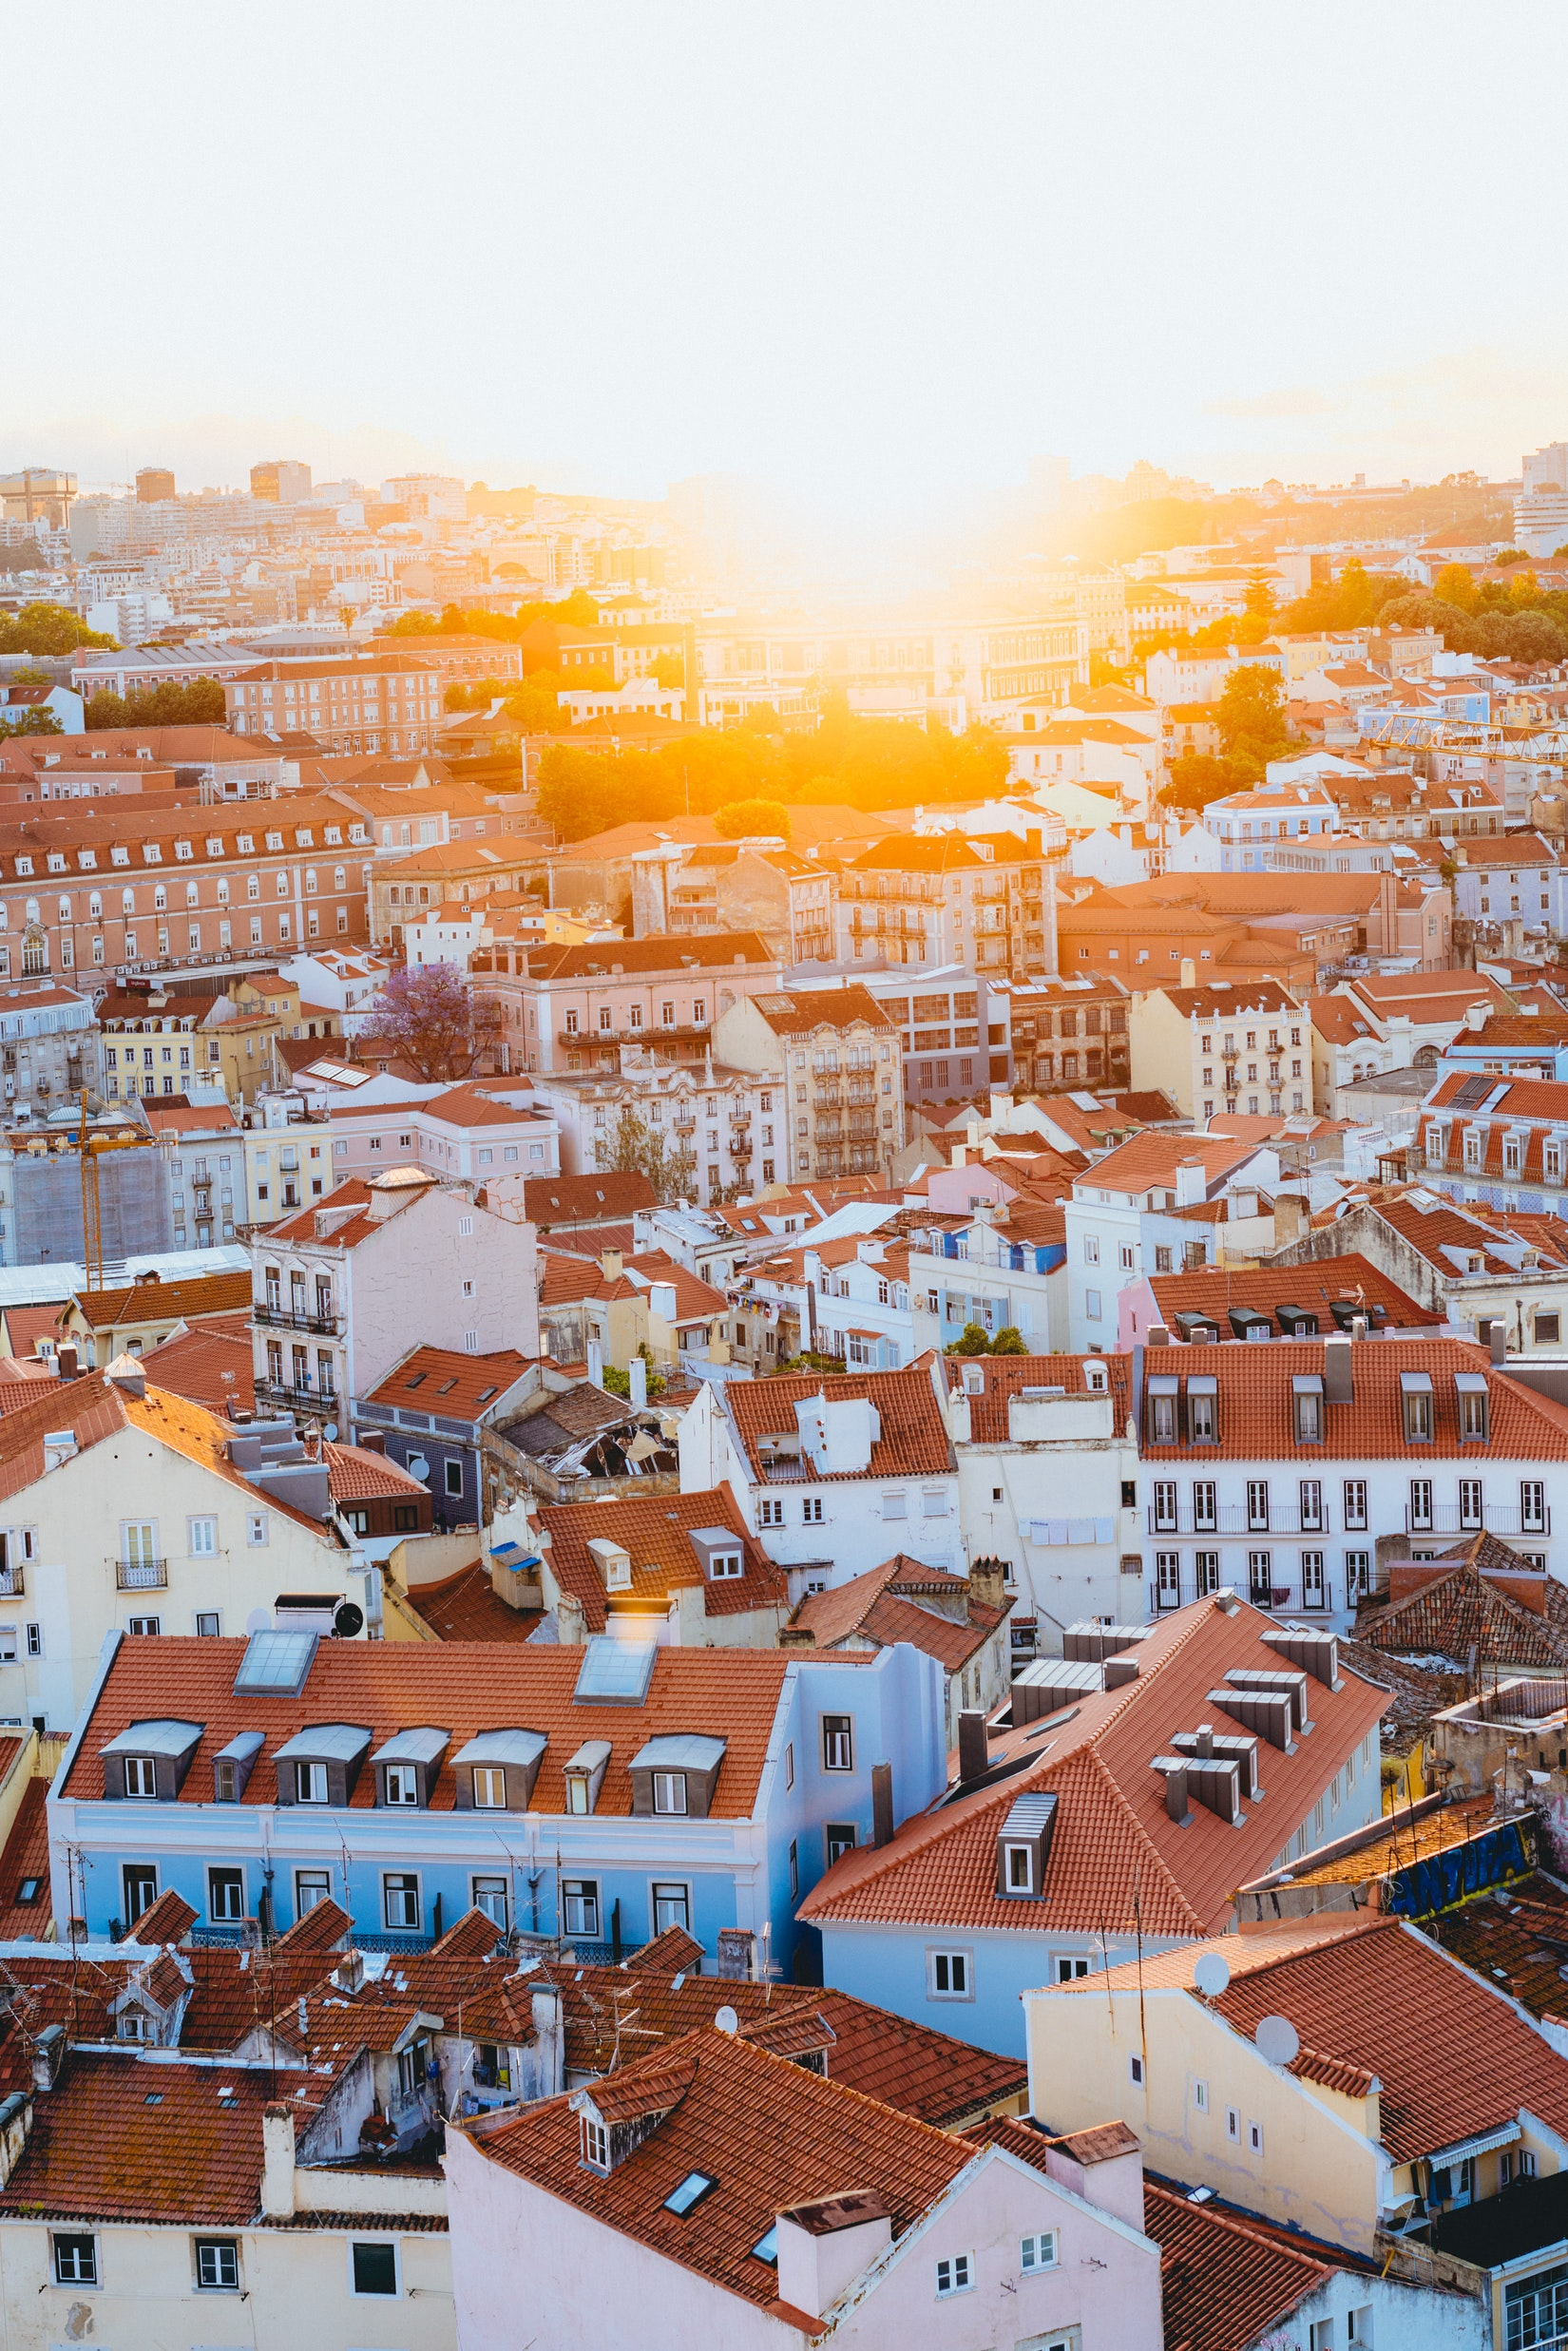 Landscape view of Lisbon, Portugal and all its red roofs